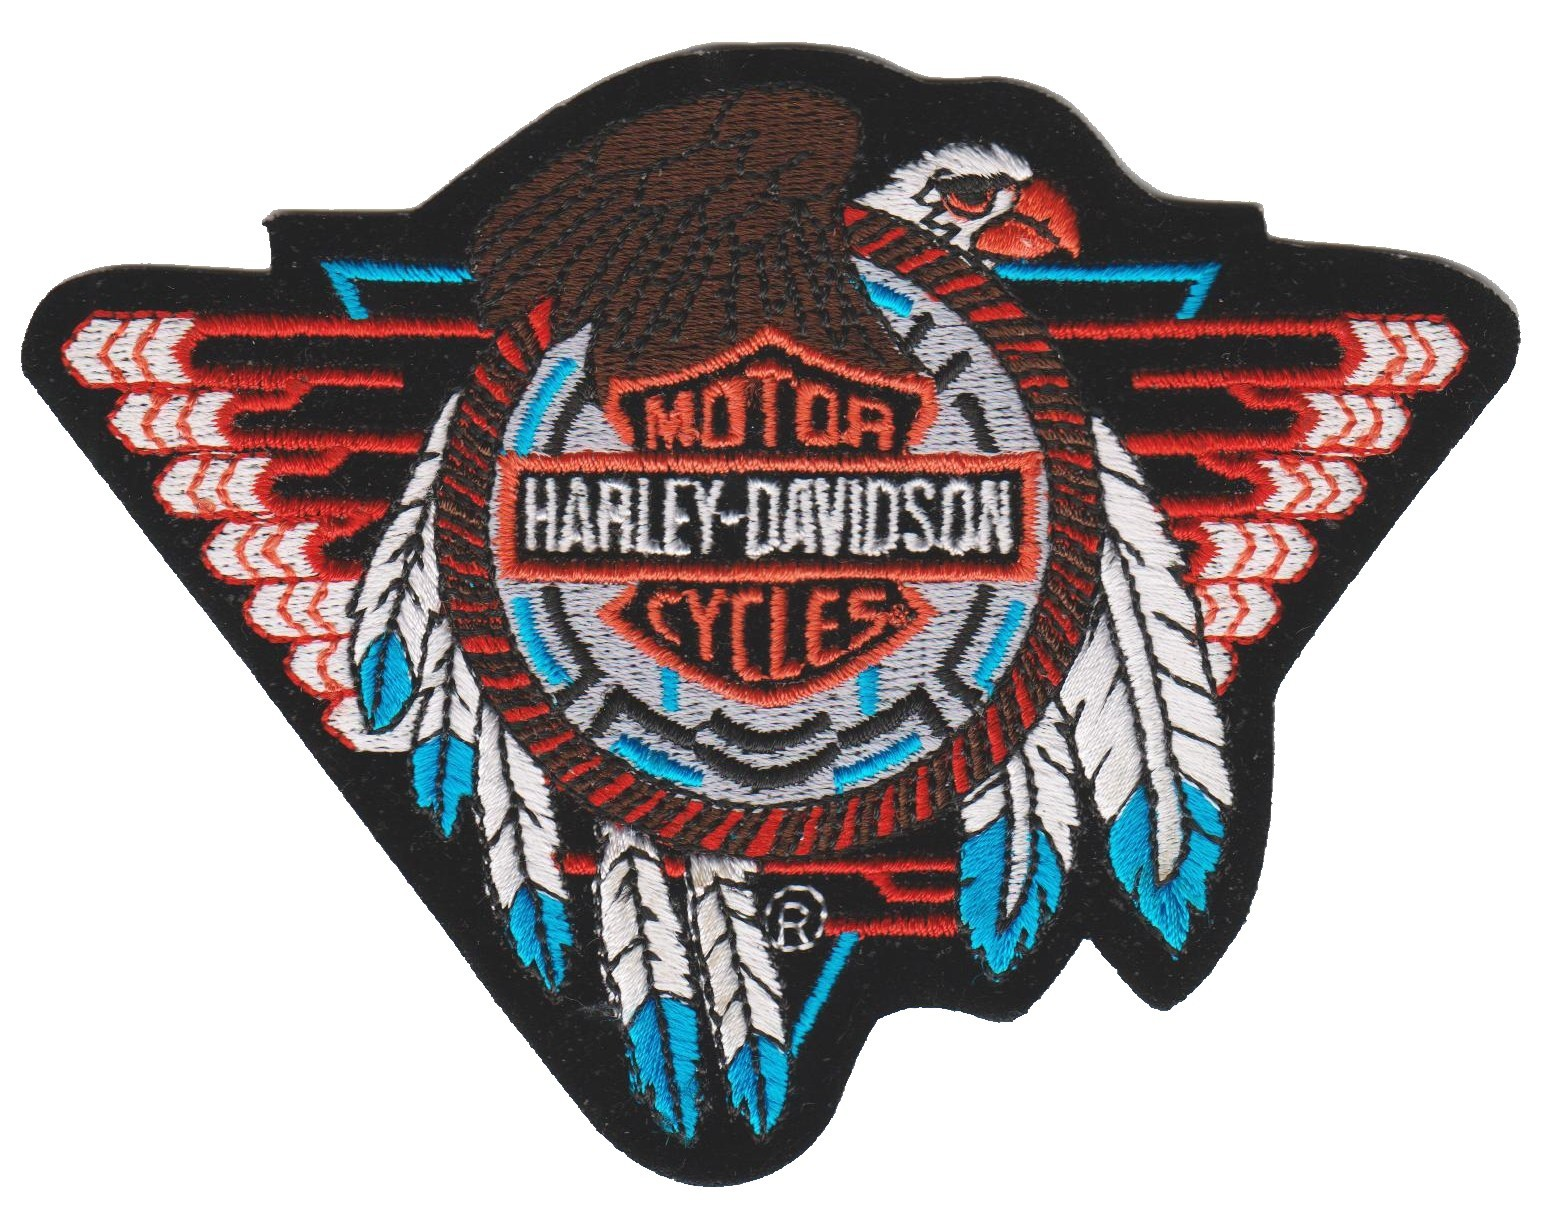 "Harley-Davidson ® Tribal Eagle Harley ® Patch3 3/4 "" x 5""FREE SHIPPING - Product Image"